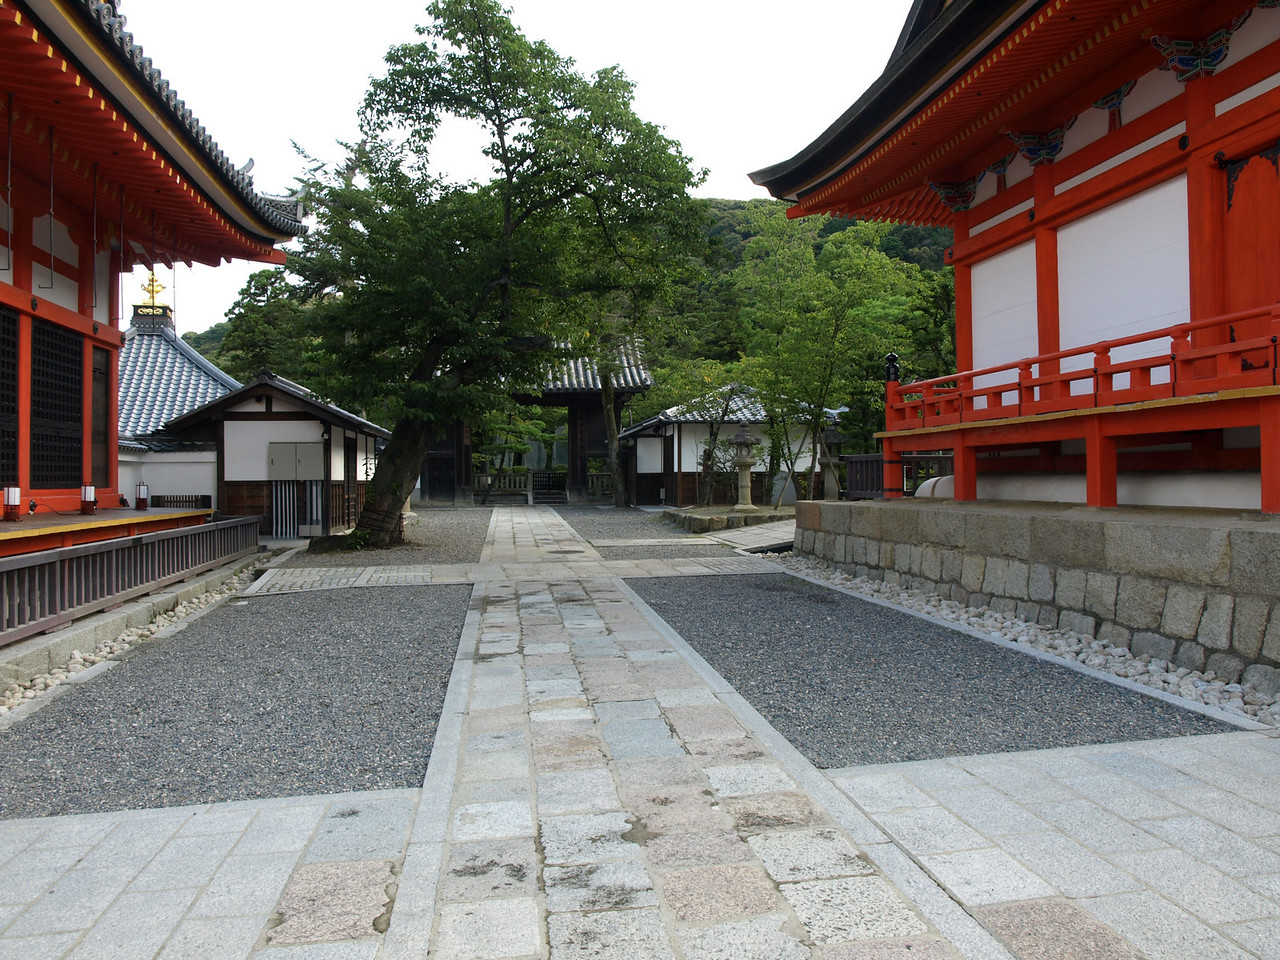 Before we enter the middle gate, we take a small detour to the left. To the right is the Founder's Hall.